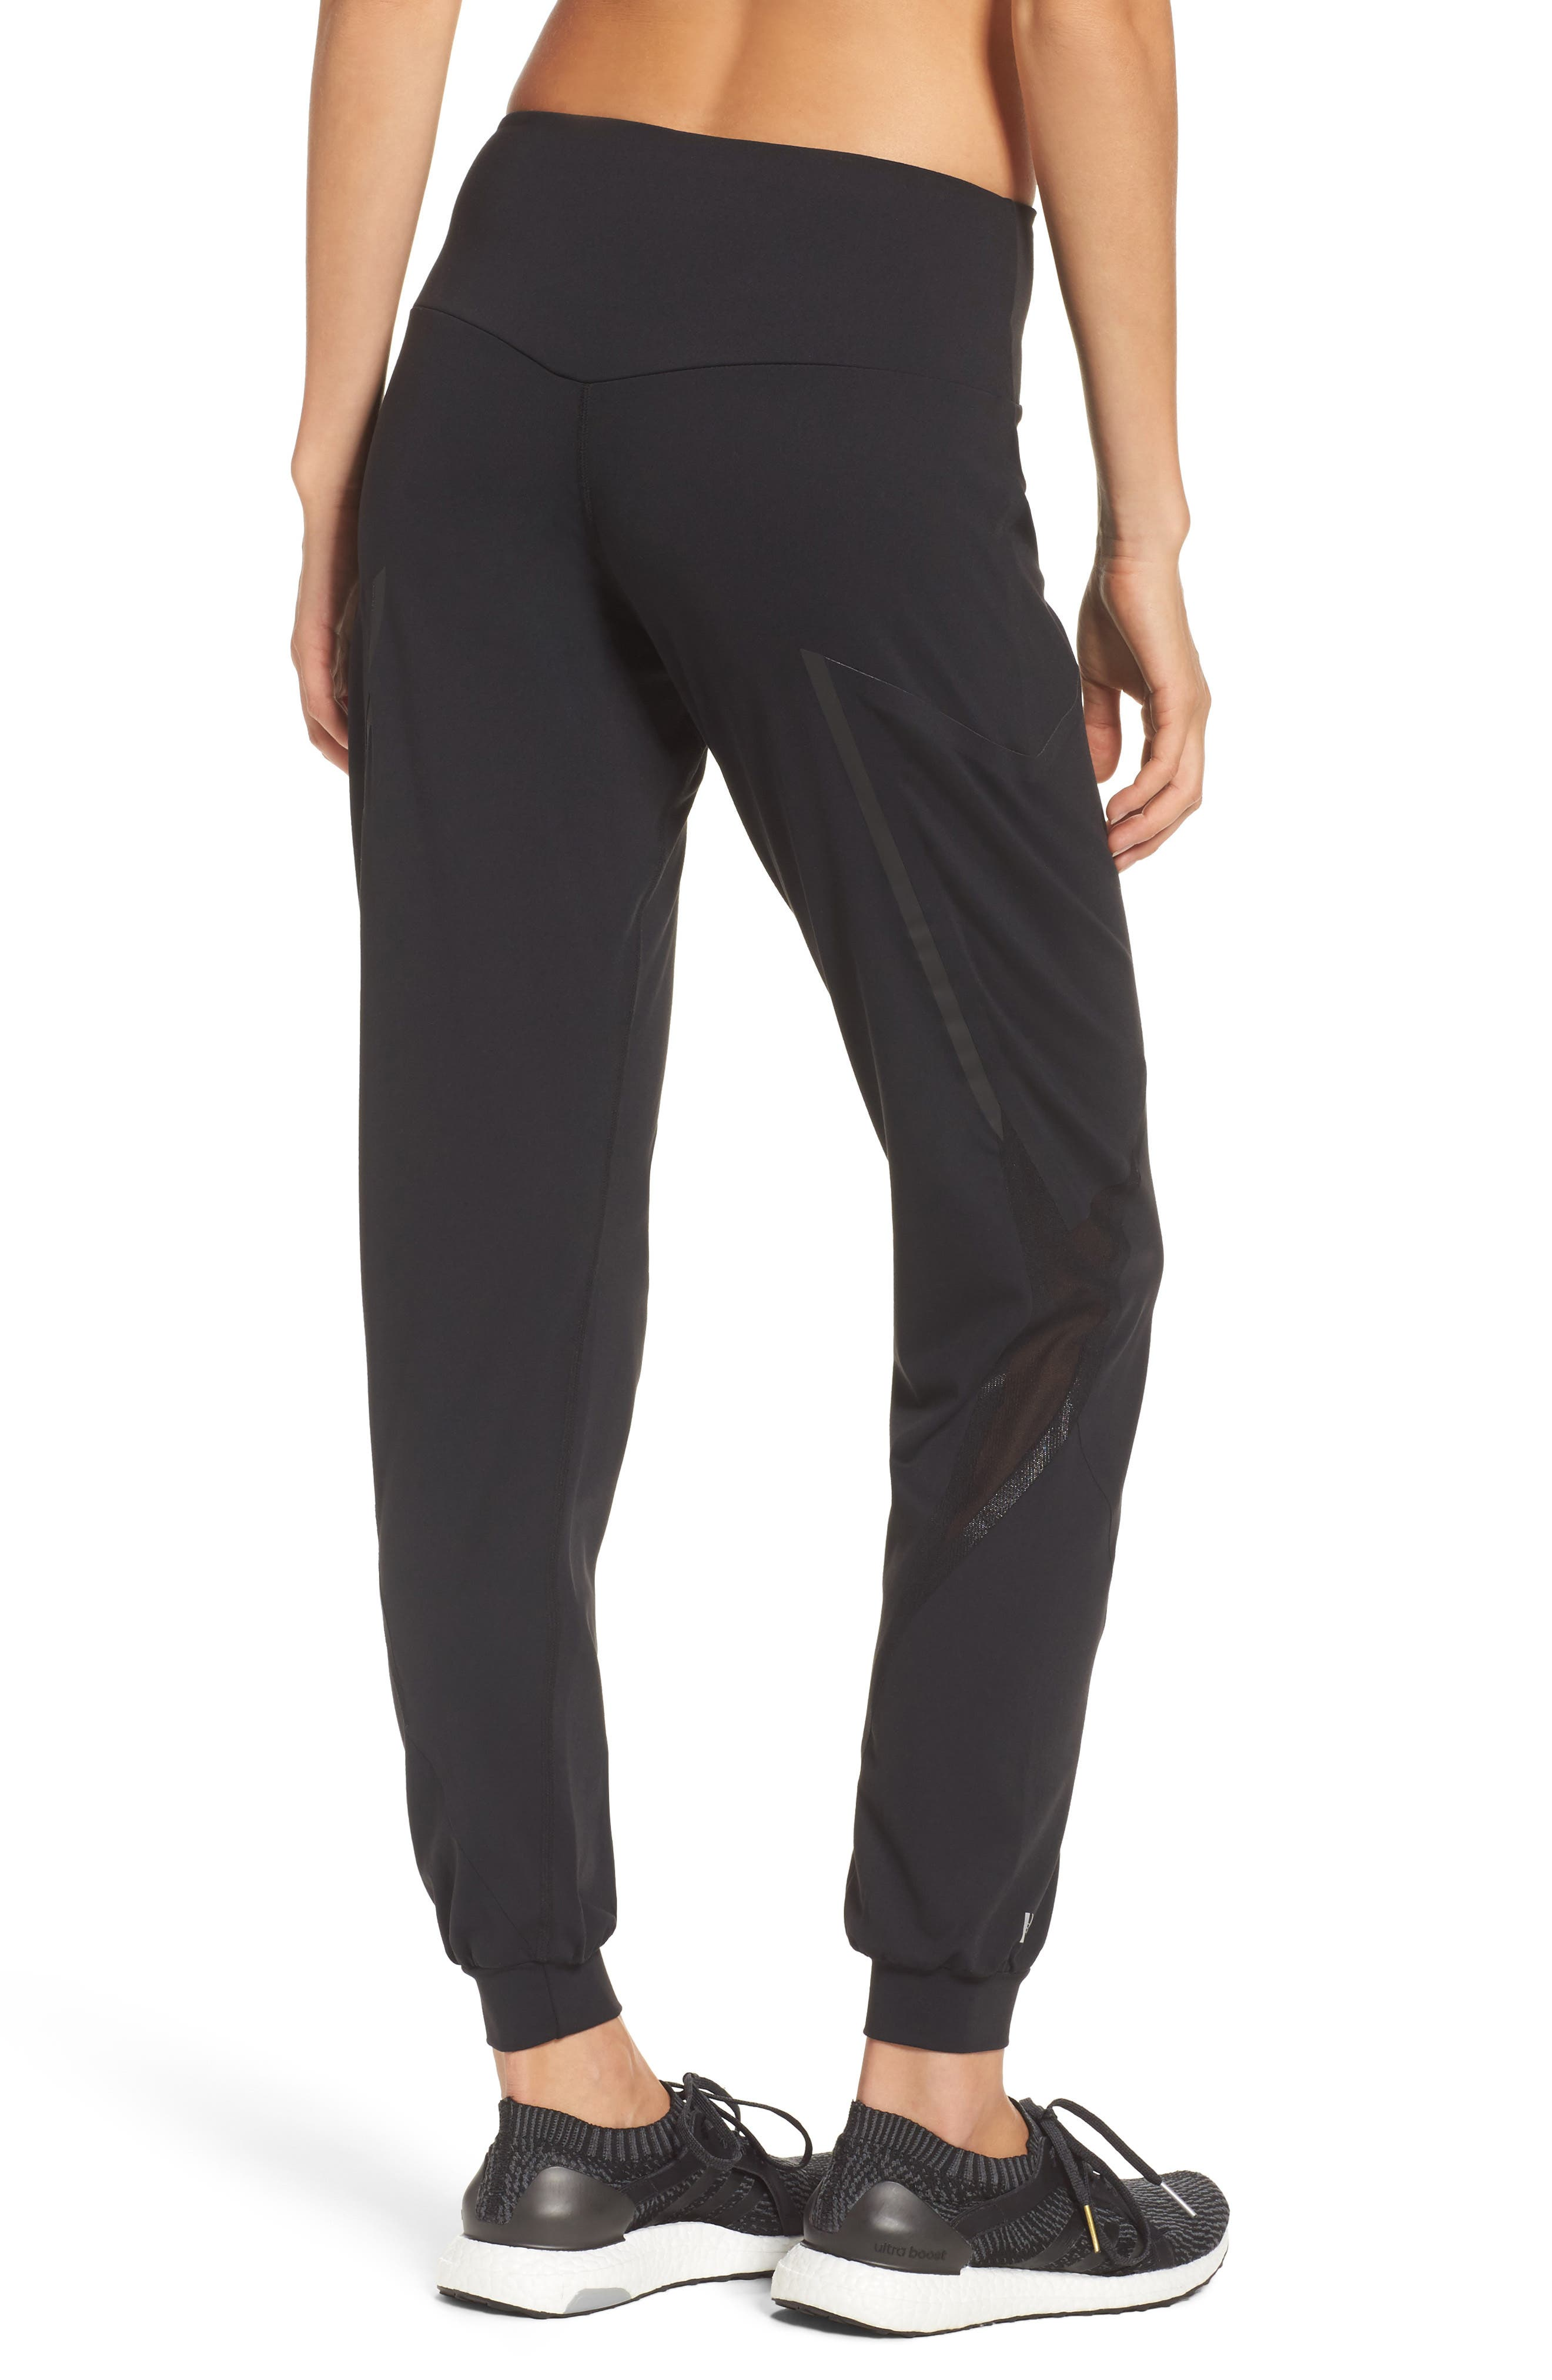 BoomBoom Athletica Track Pants,                             Alternate thumbnail 2, color,                             BLACK